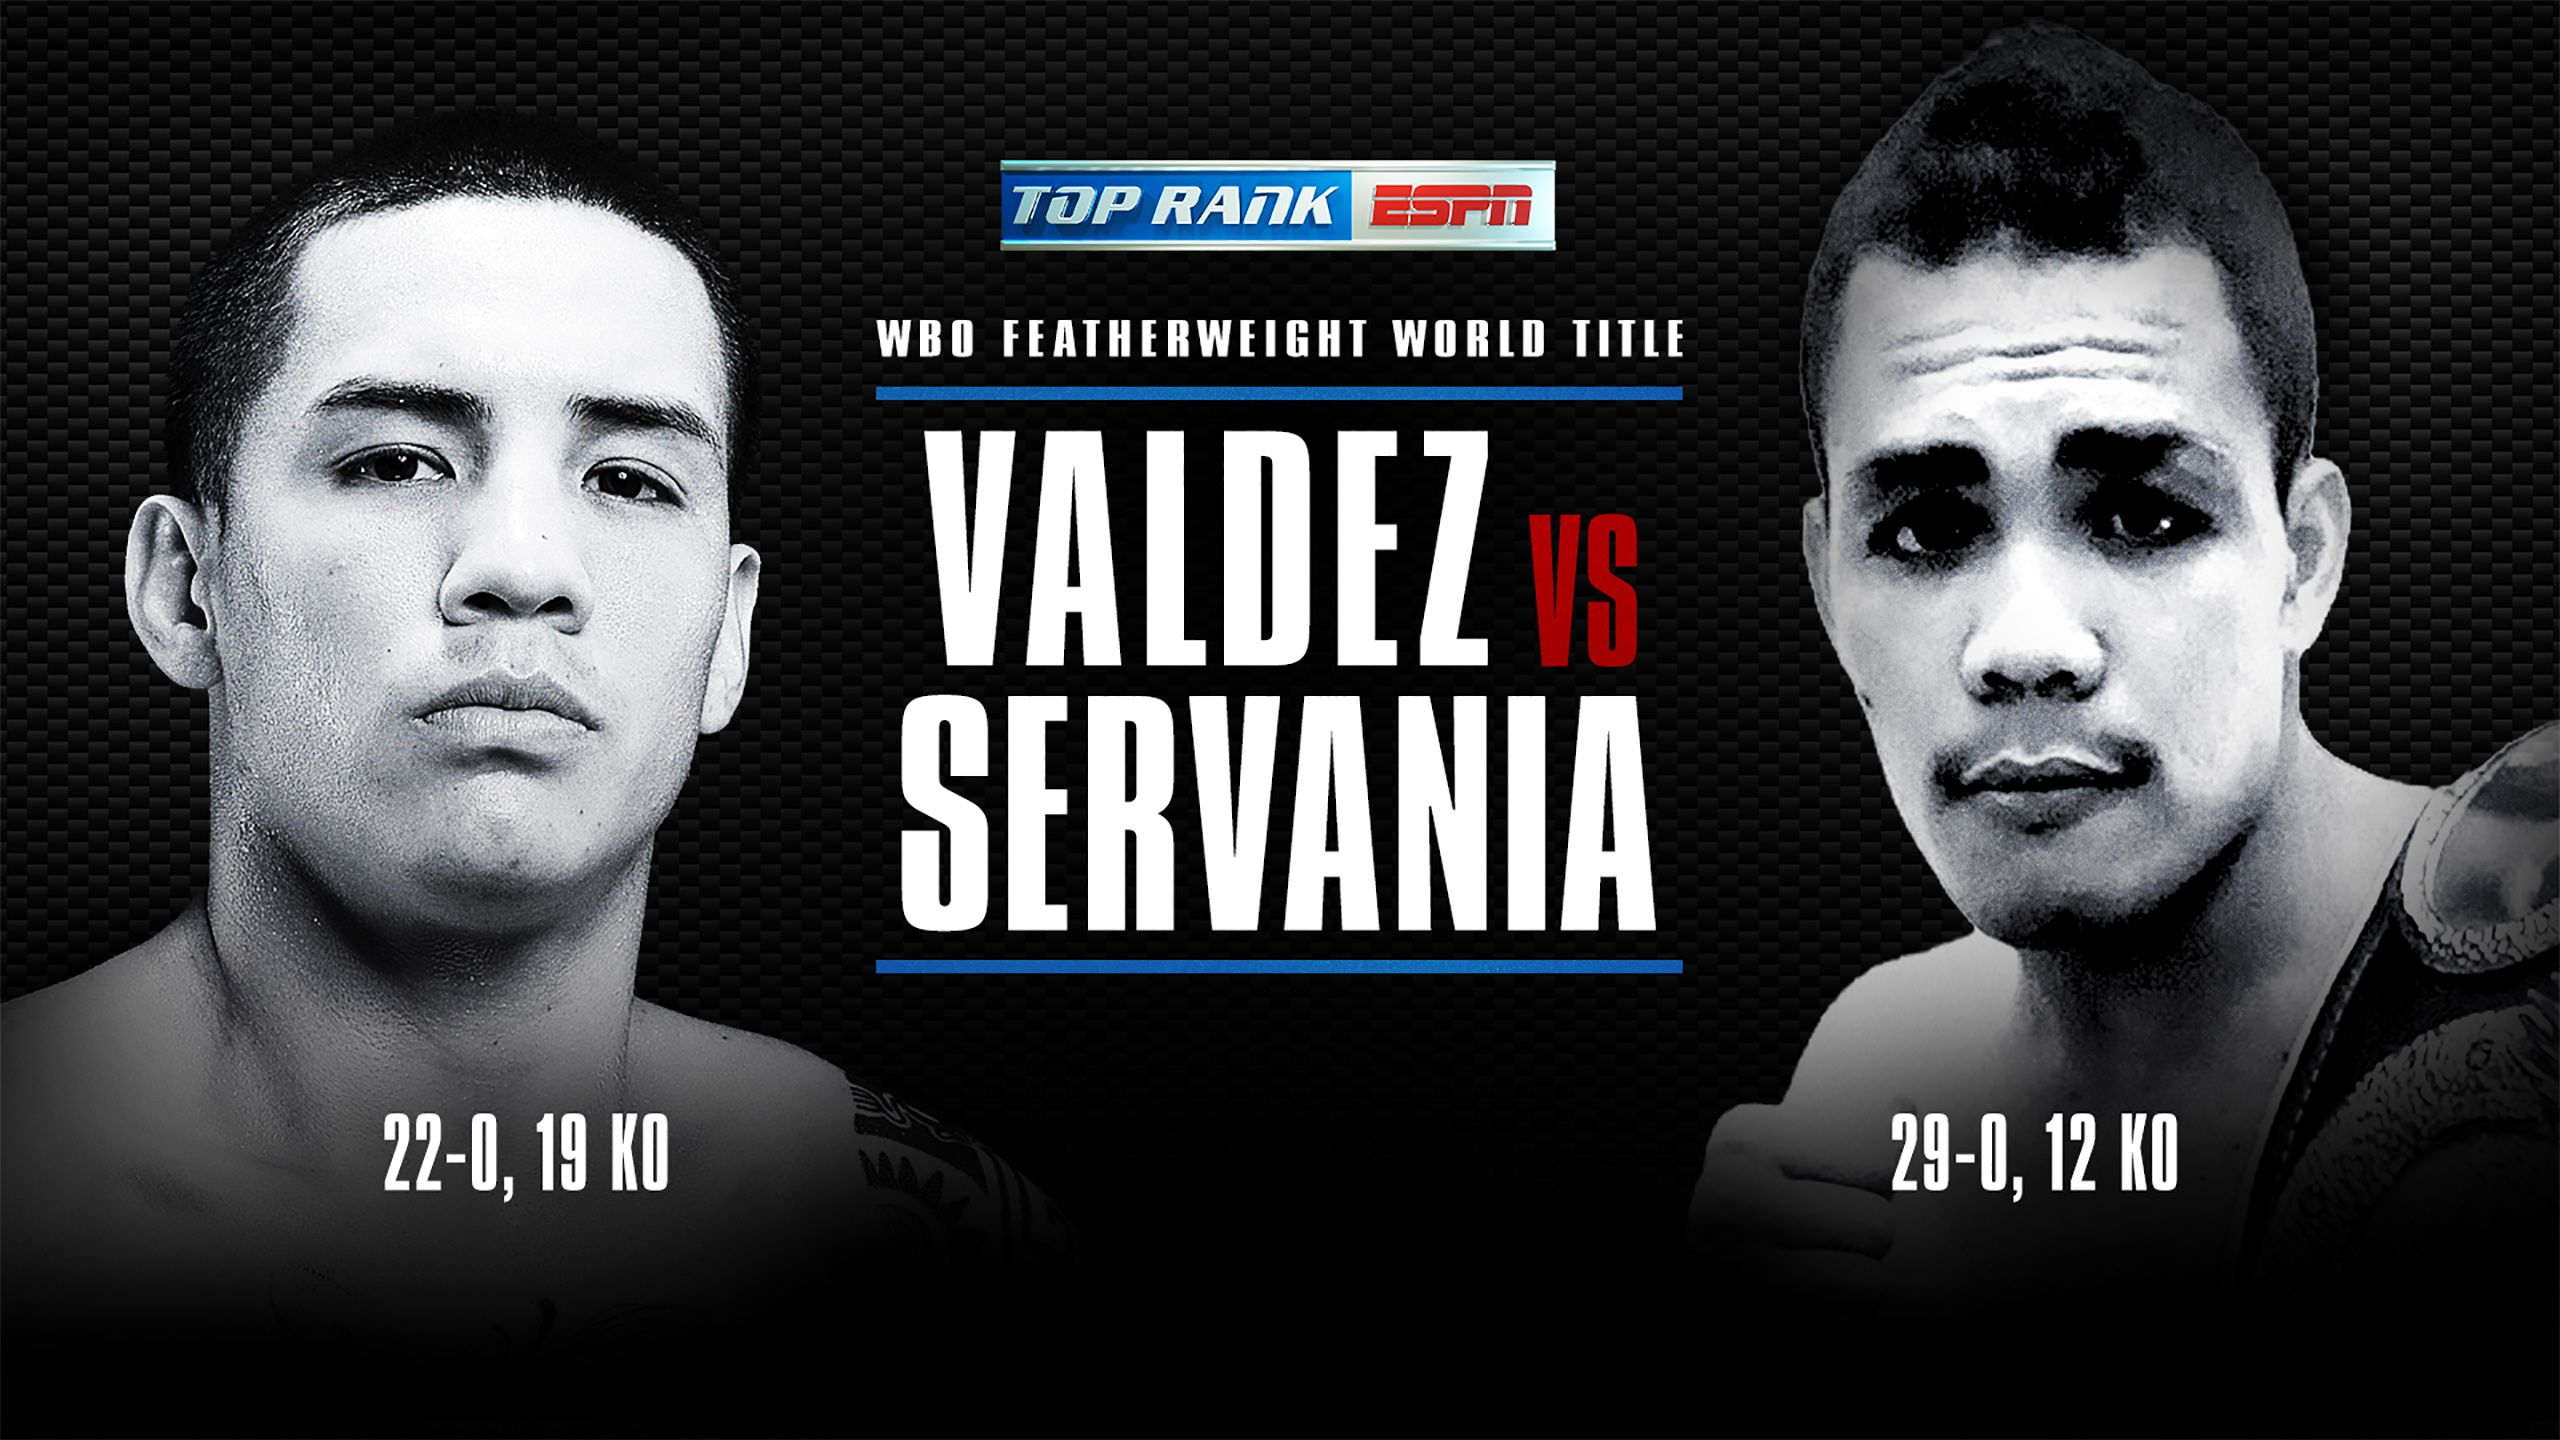 Oscar Valdez vs. Genesis Servania (re-air)